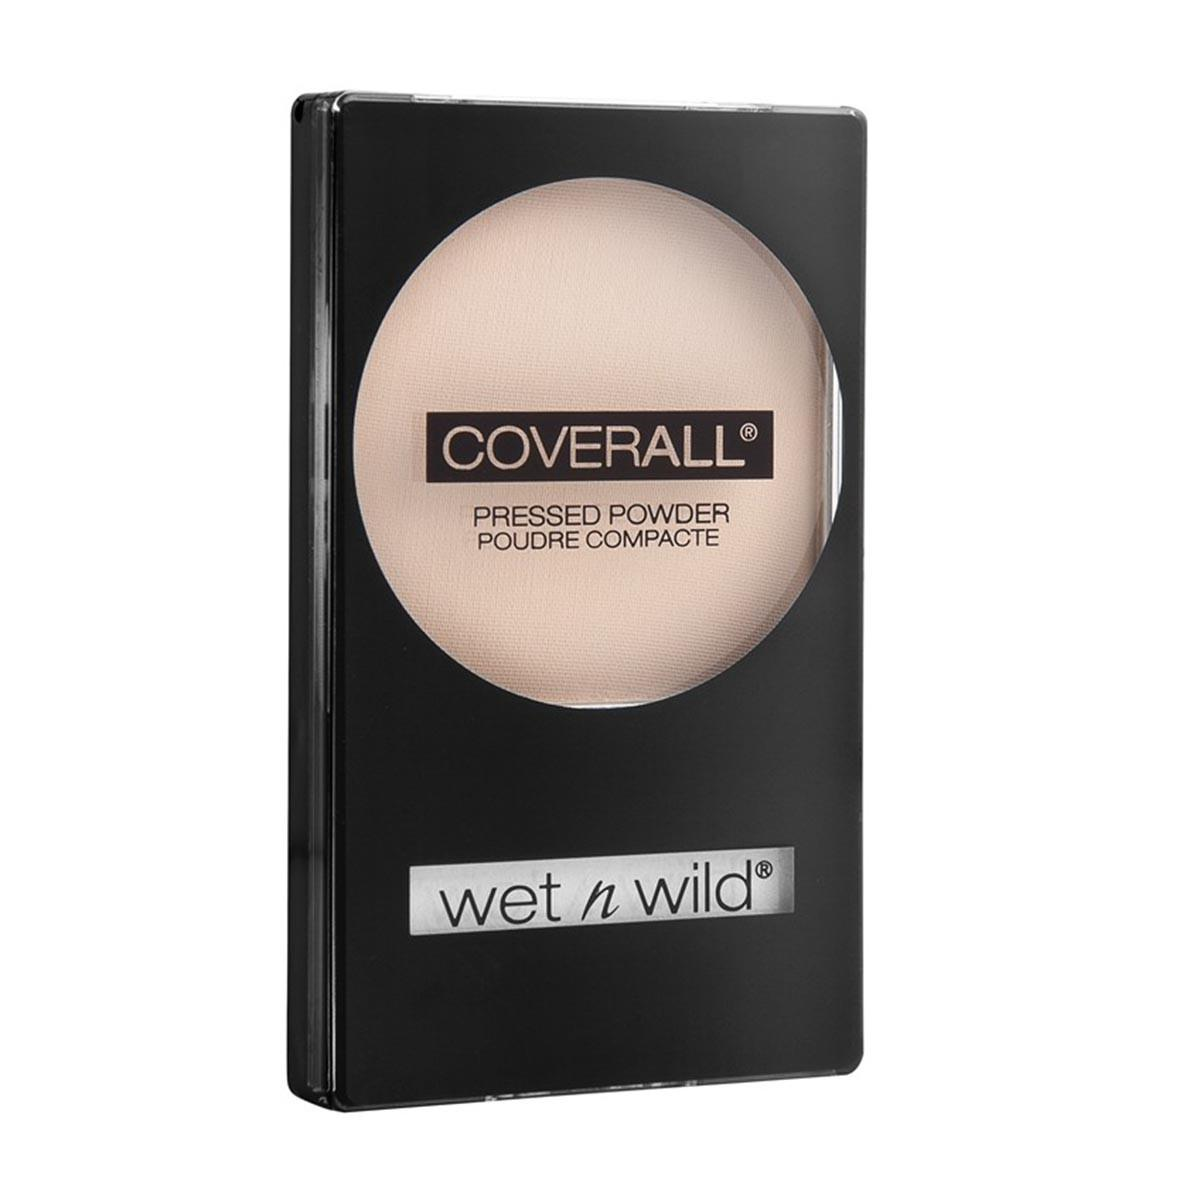 Wet n wild Coverall Pressed Powder Light Medium